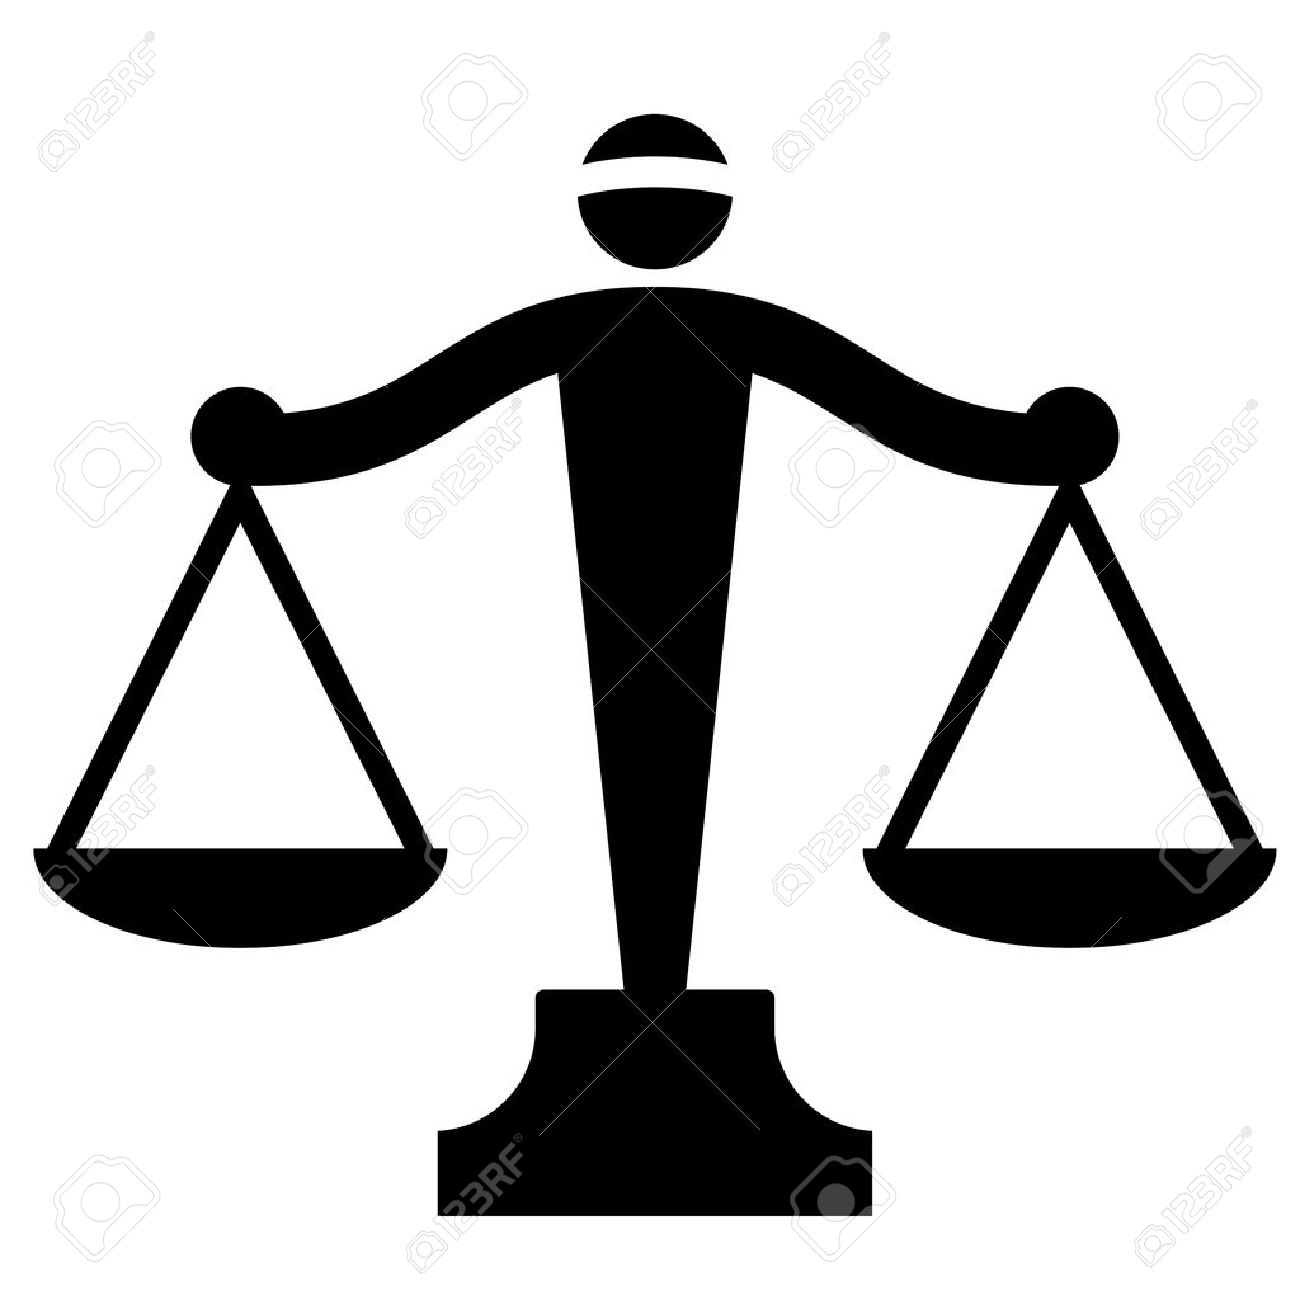 Vector icon of justice scales Stock Vector - 13046419